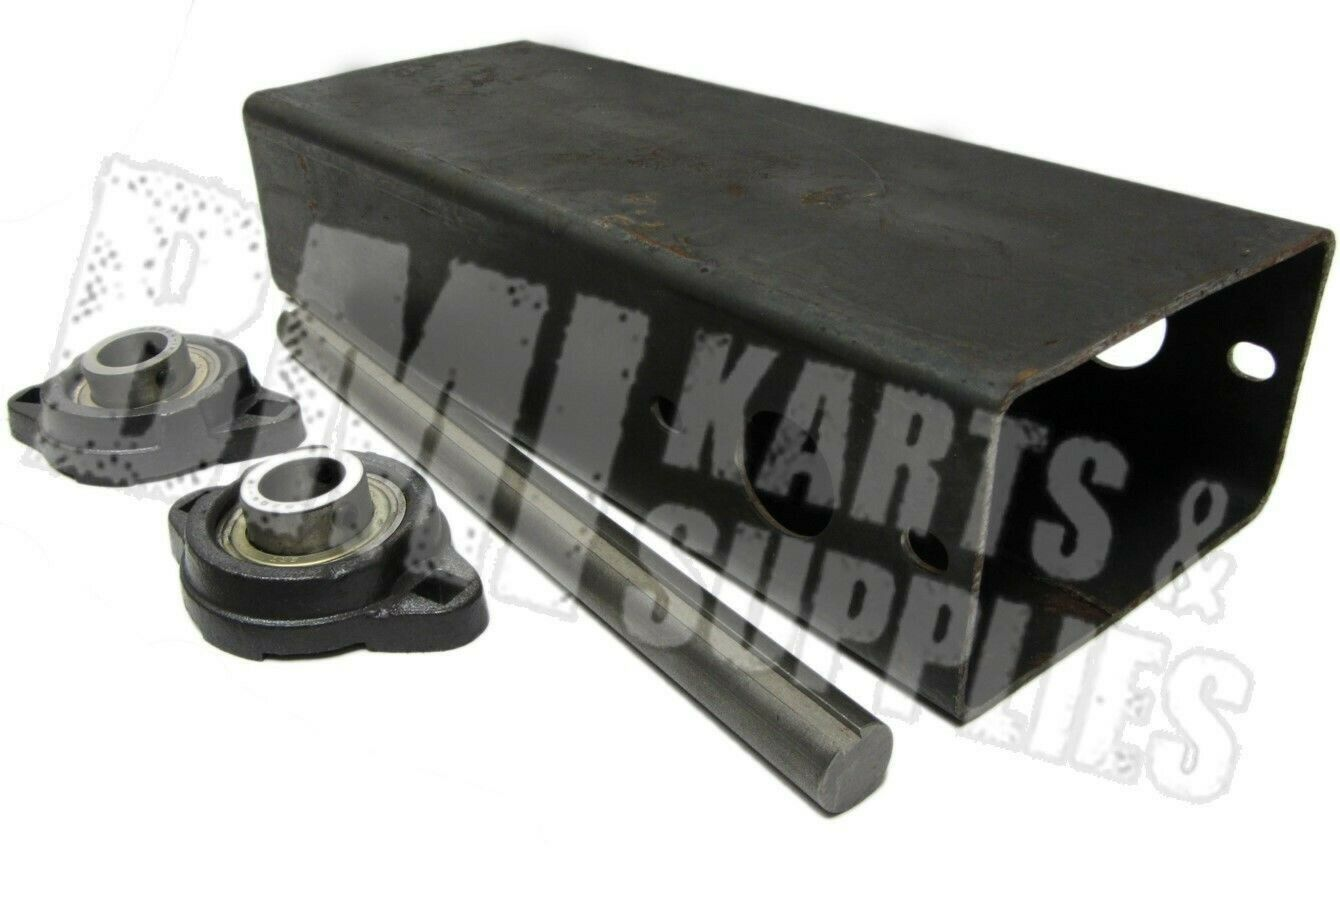 Motor Mount Plate With Jackshaft And Bearings For Go Kart Carts Comet Torque Converter Off Road Gear Parts Supplies